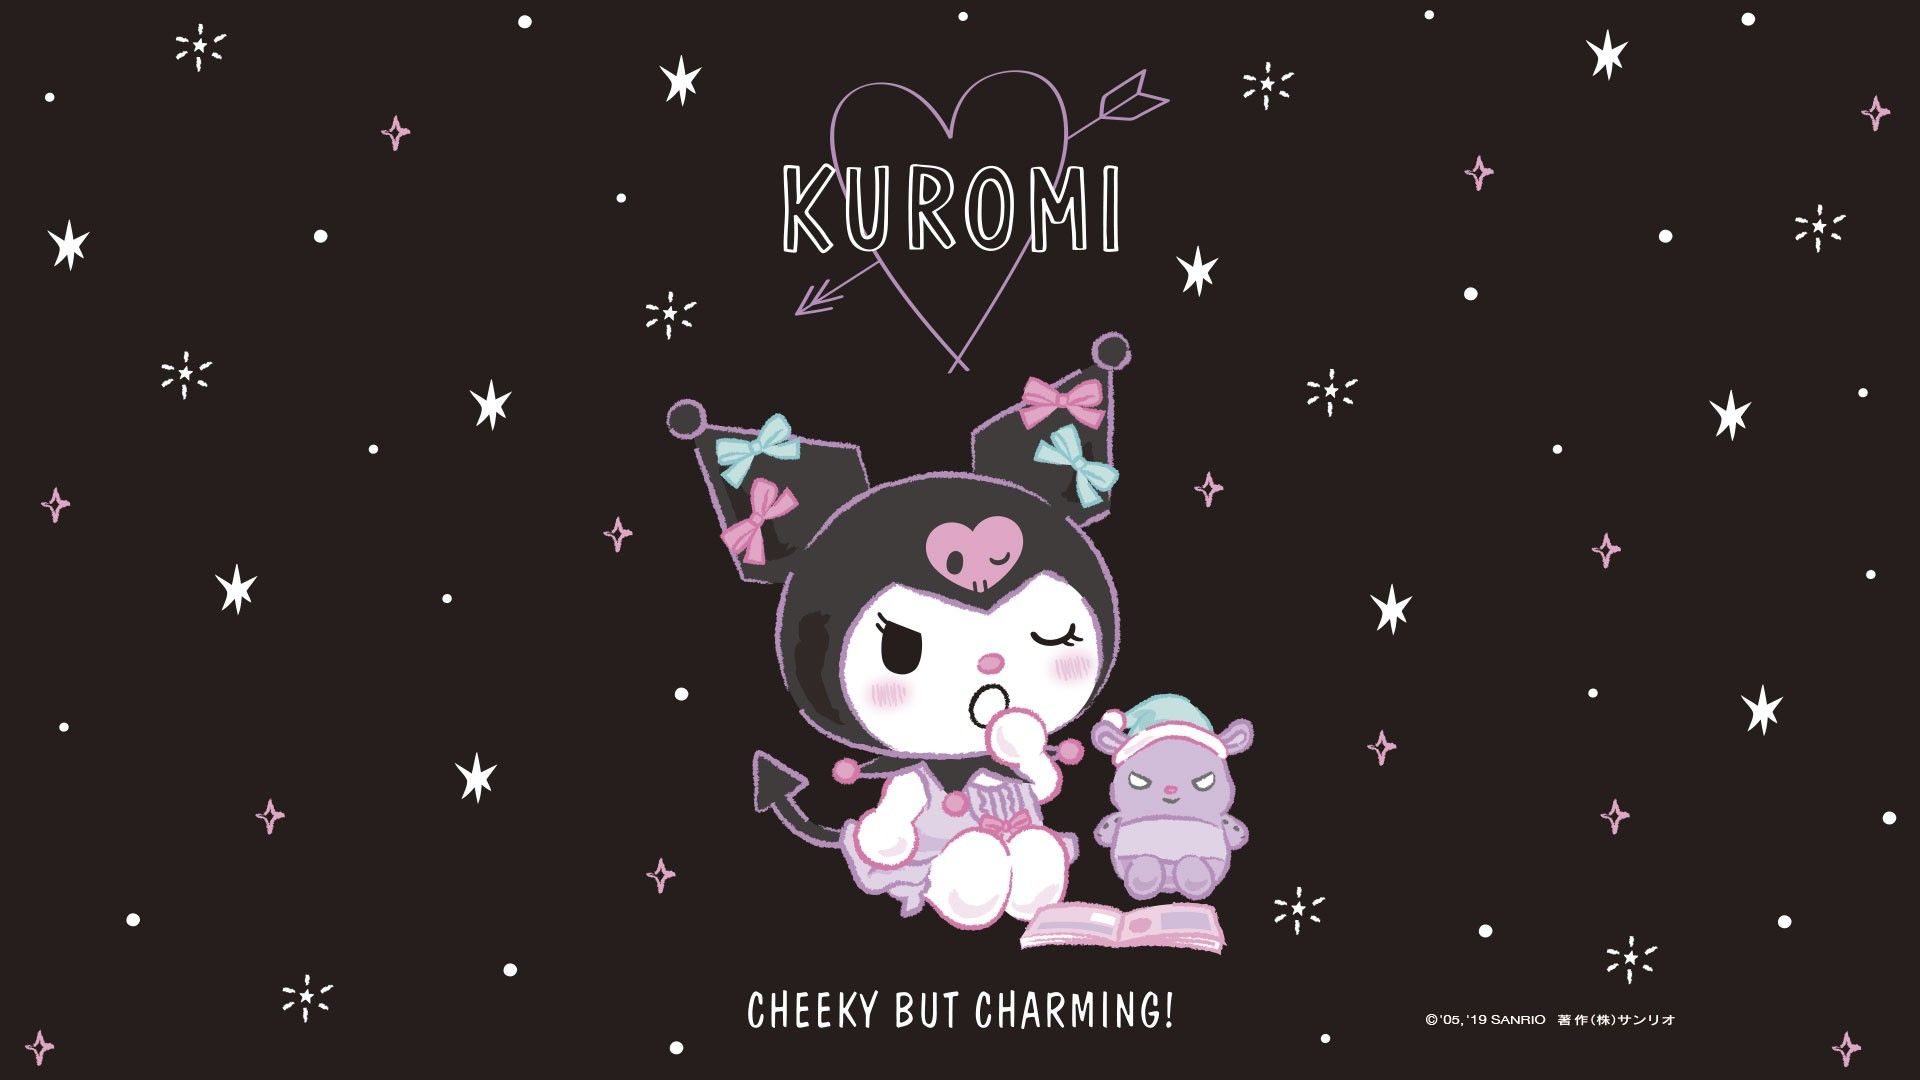 Kuromi Wallpaper Sanrio Wallpaper Hello Kitty Wallpaper Hd Hello Kitty Wallpaper